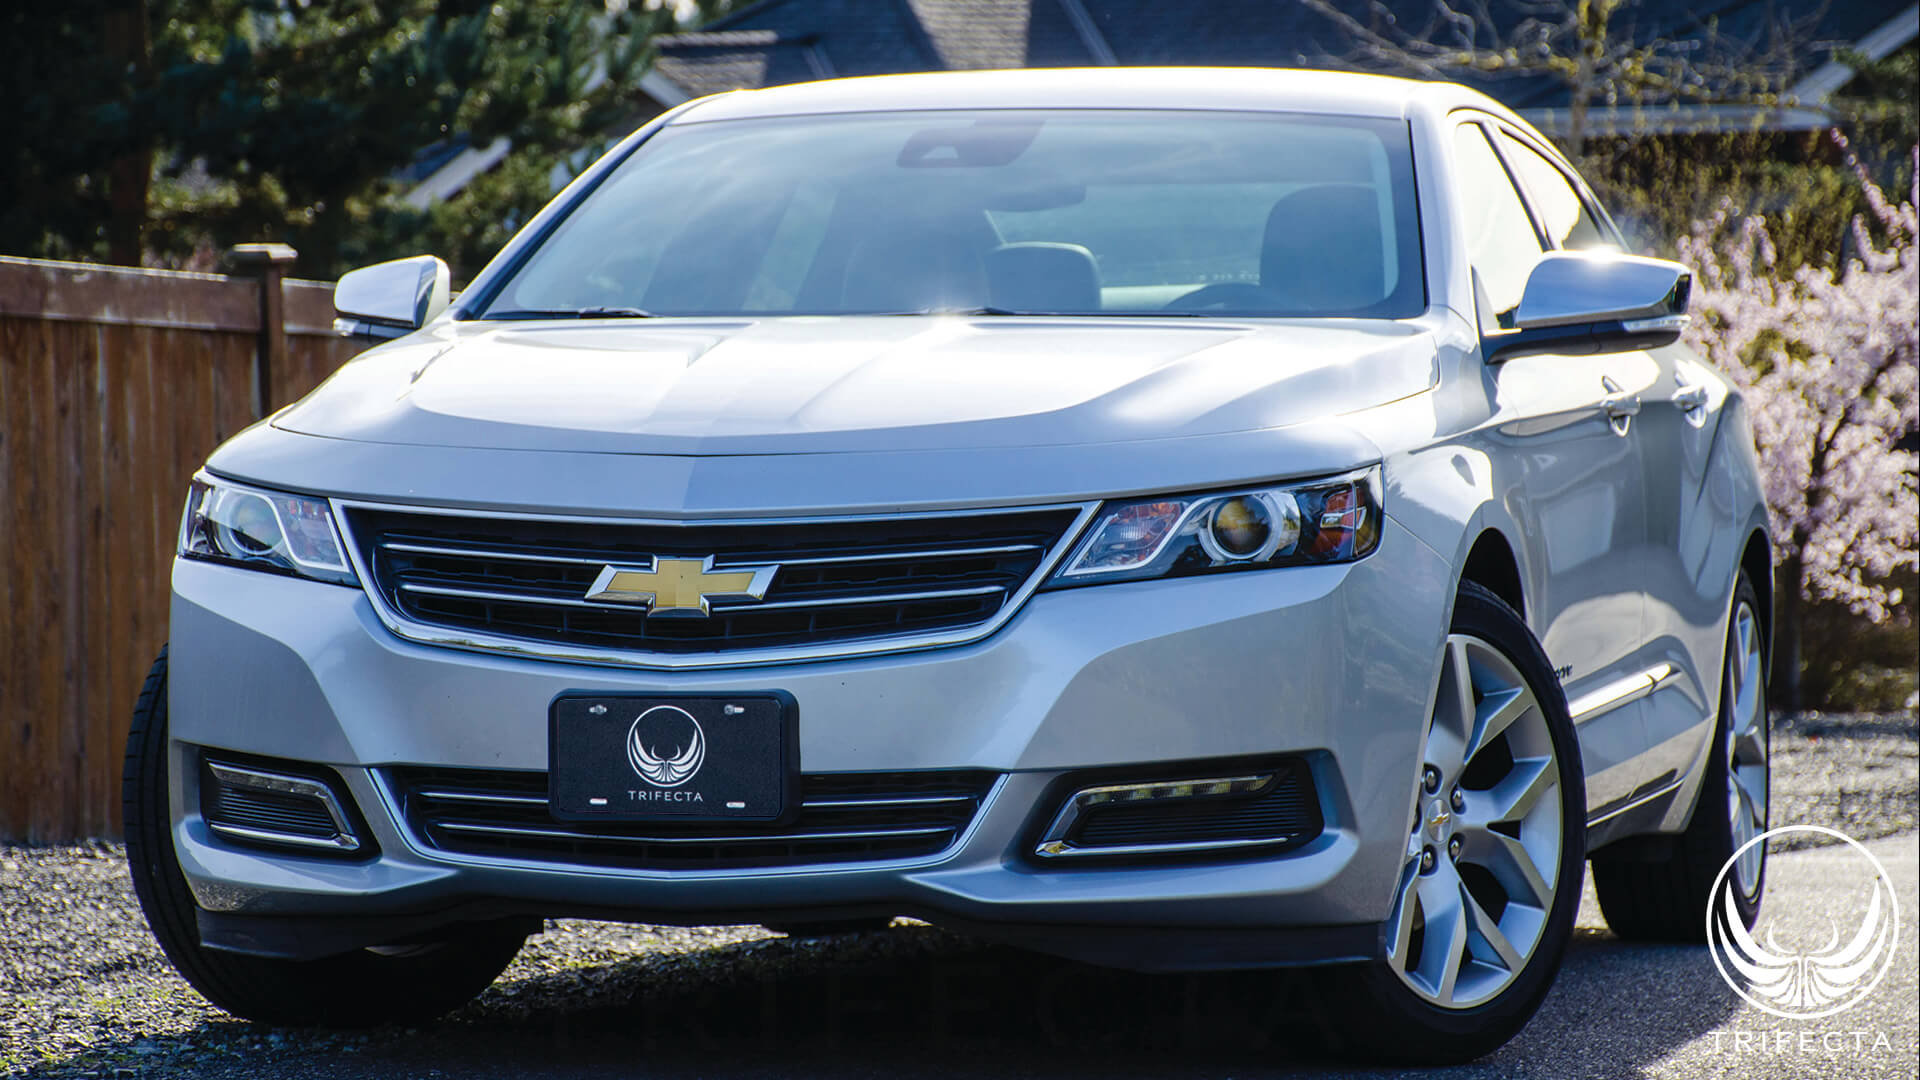 Product Review: 2014+ Chevrolet Impala - 3.6L - Advantage